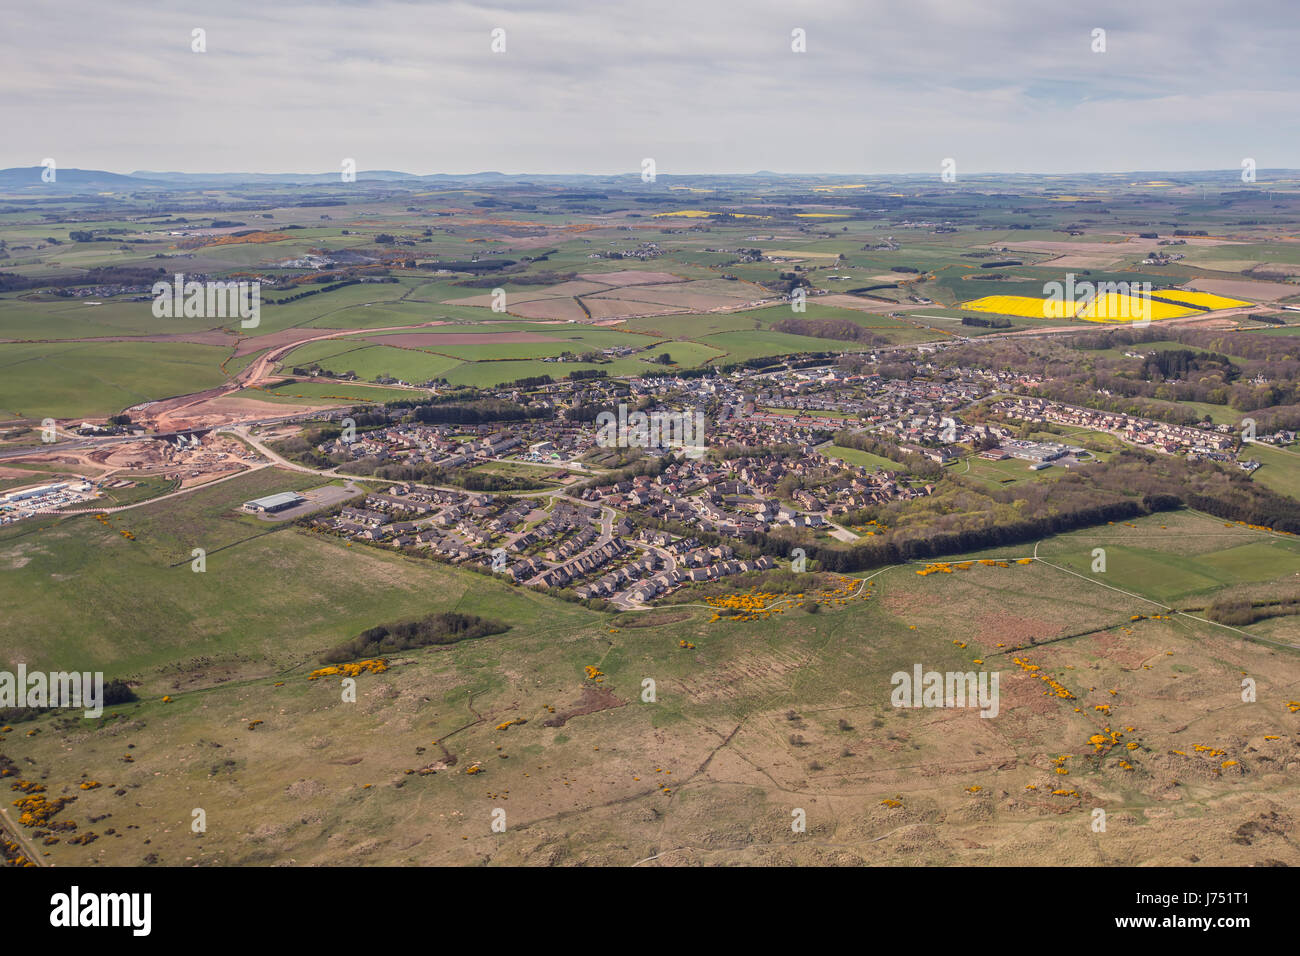 Aerial photograph of the town of Balmedie near the city of Aberdeen in North east Scotland, UK - Stock Image